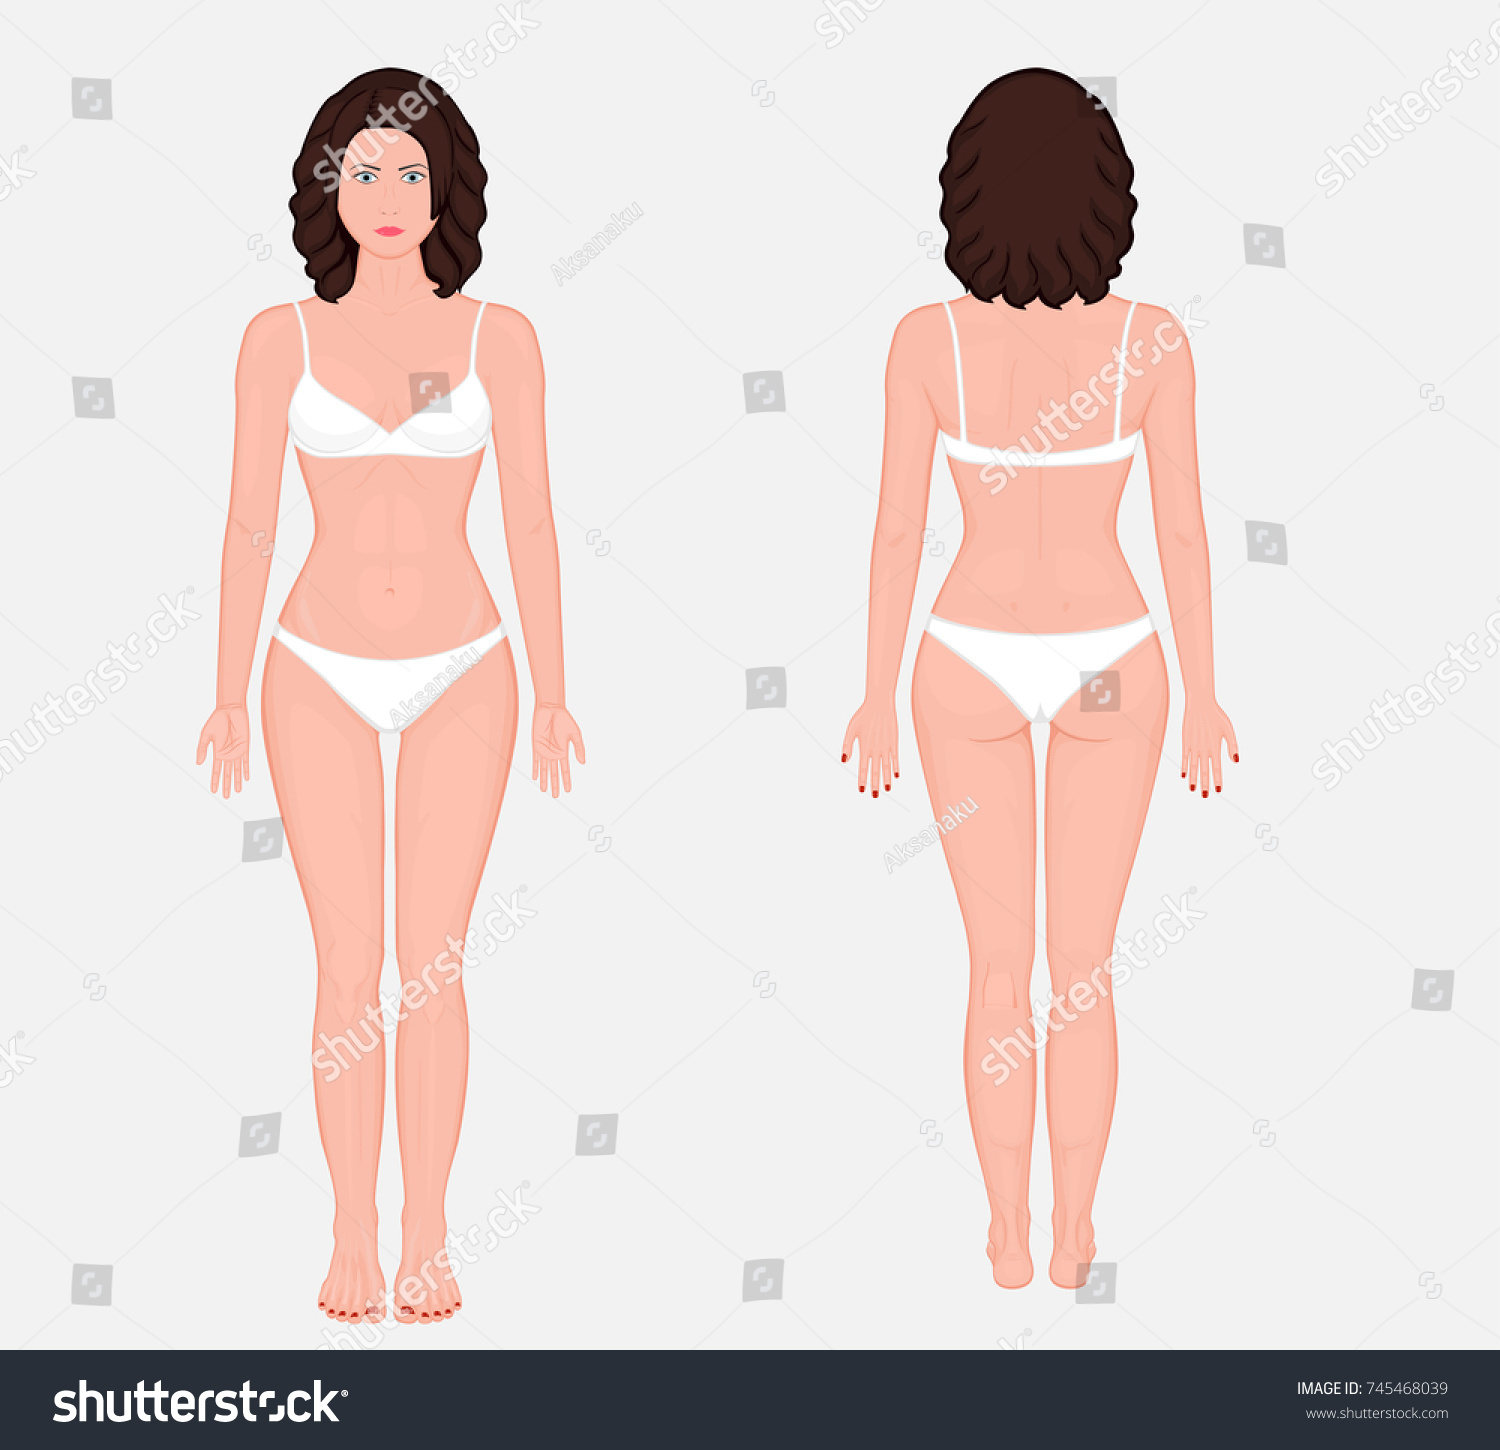 Posterior, frontal, anterior, back views of naked body of European woman in  full